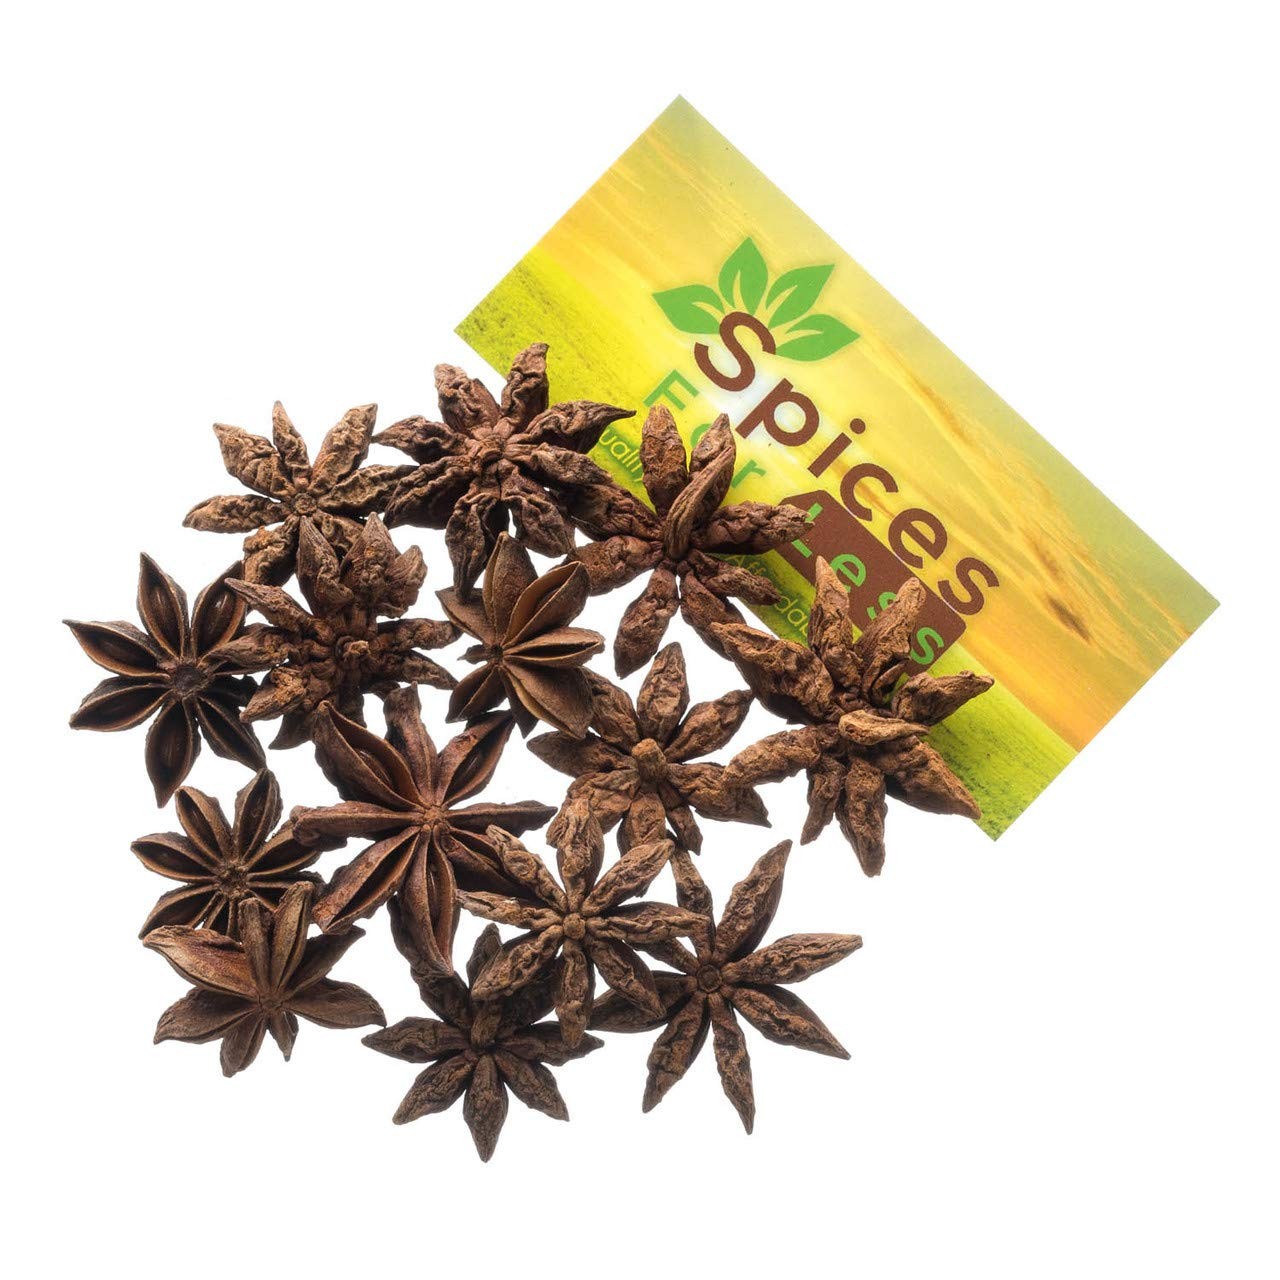 Anise, Star - 5 lbs Bulk by Spices For Less (Image #1)